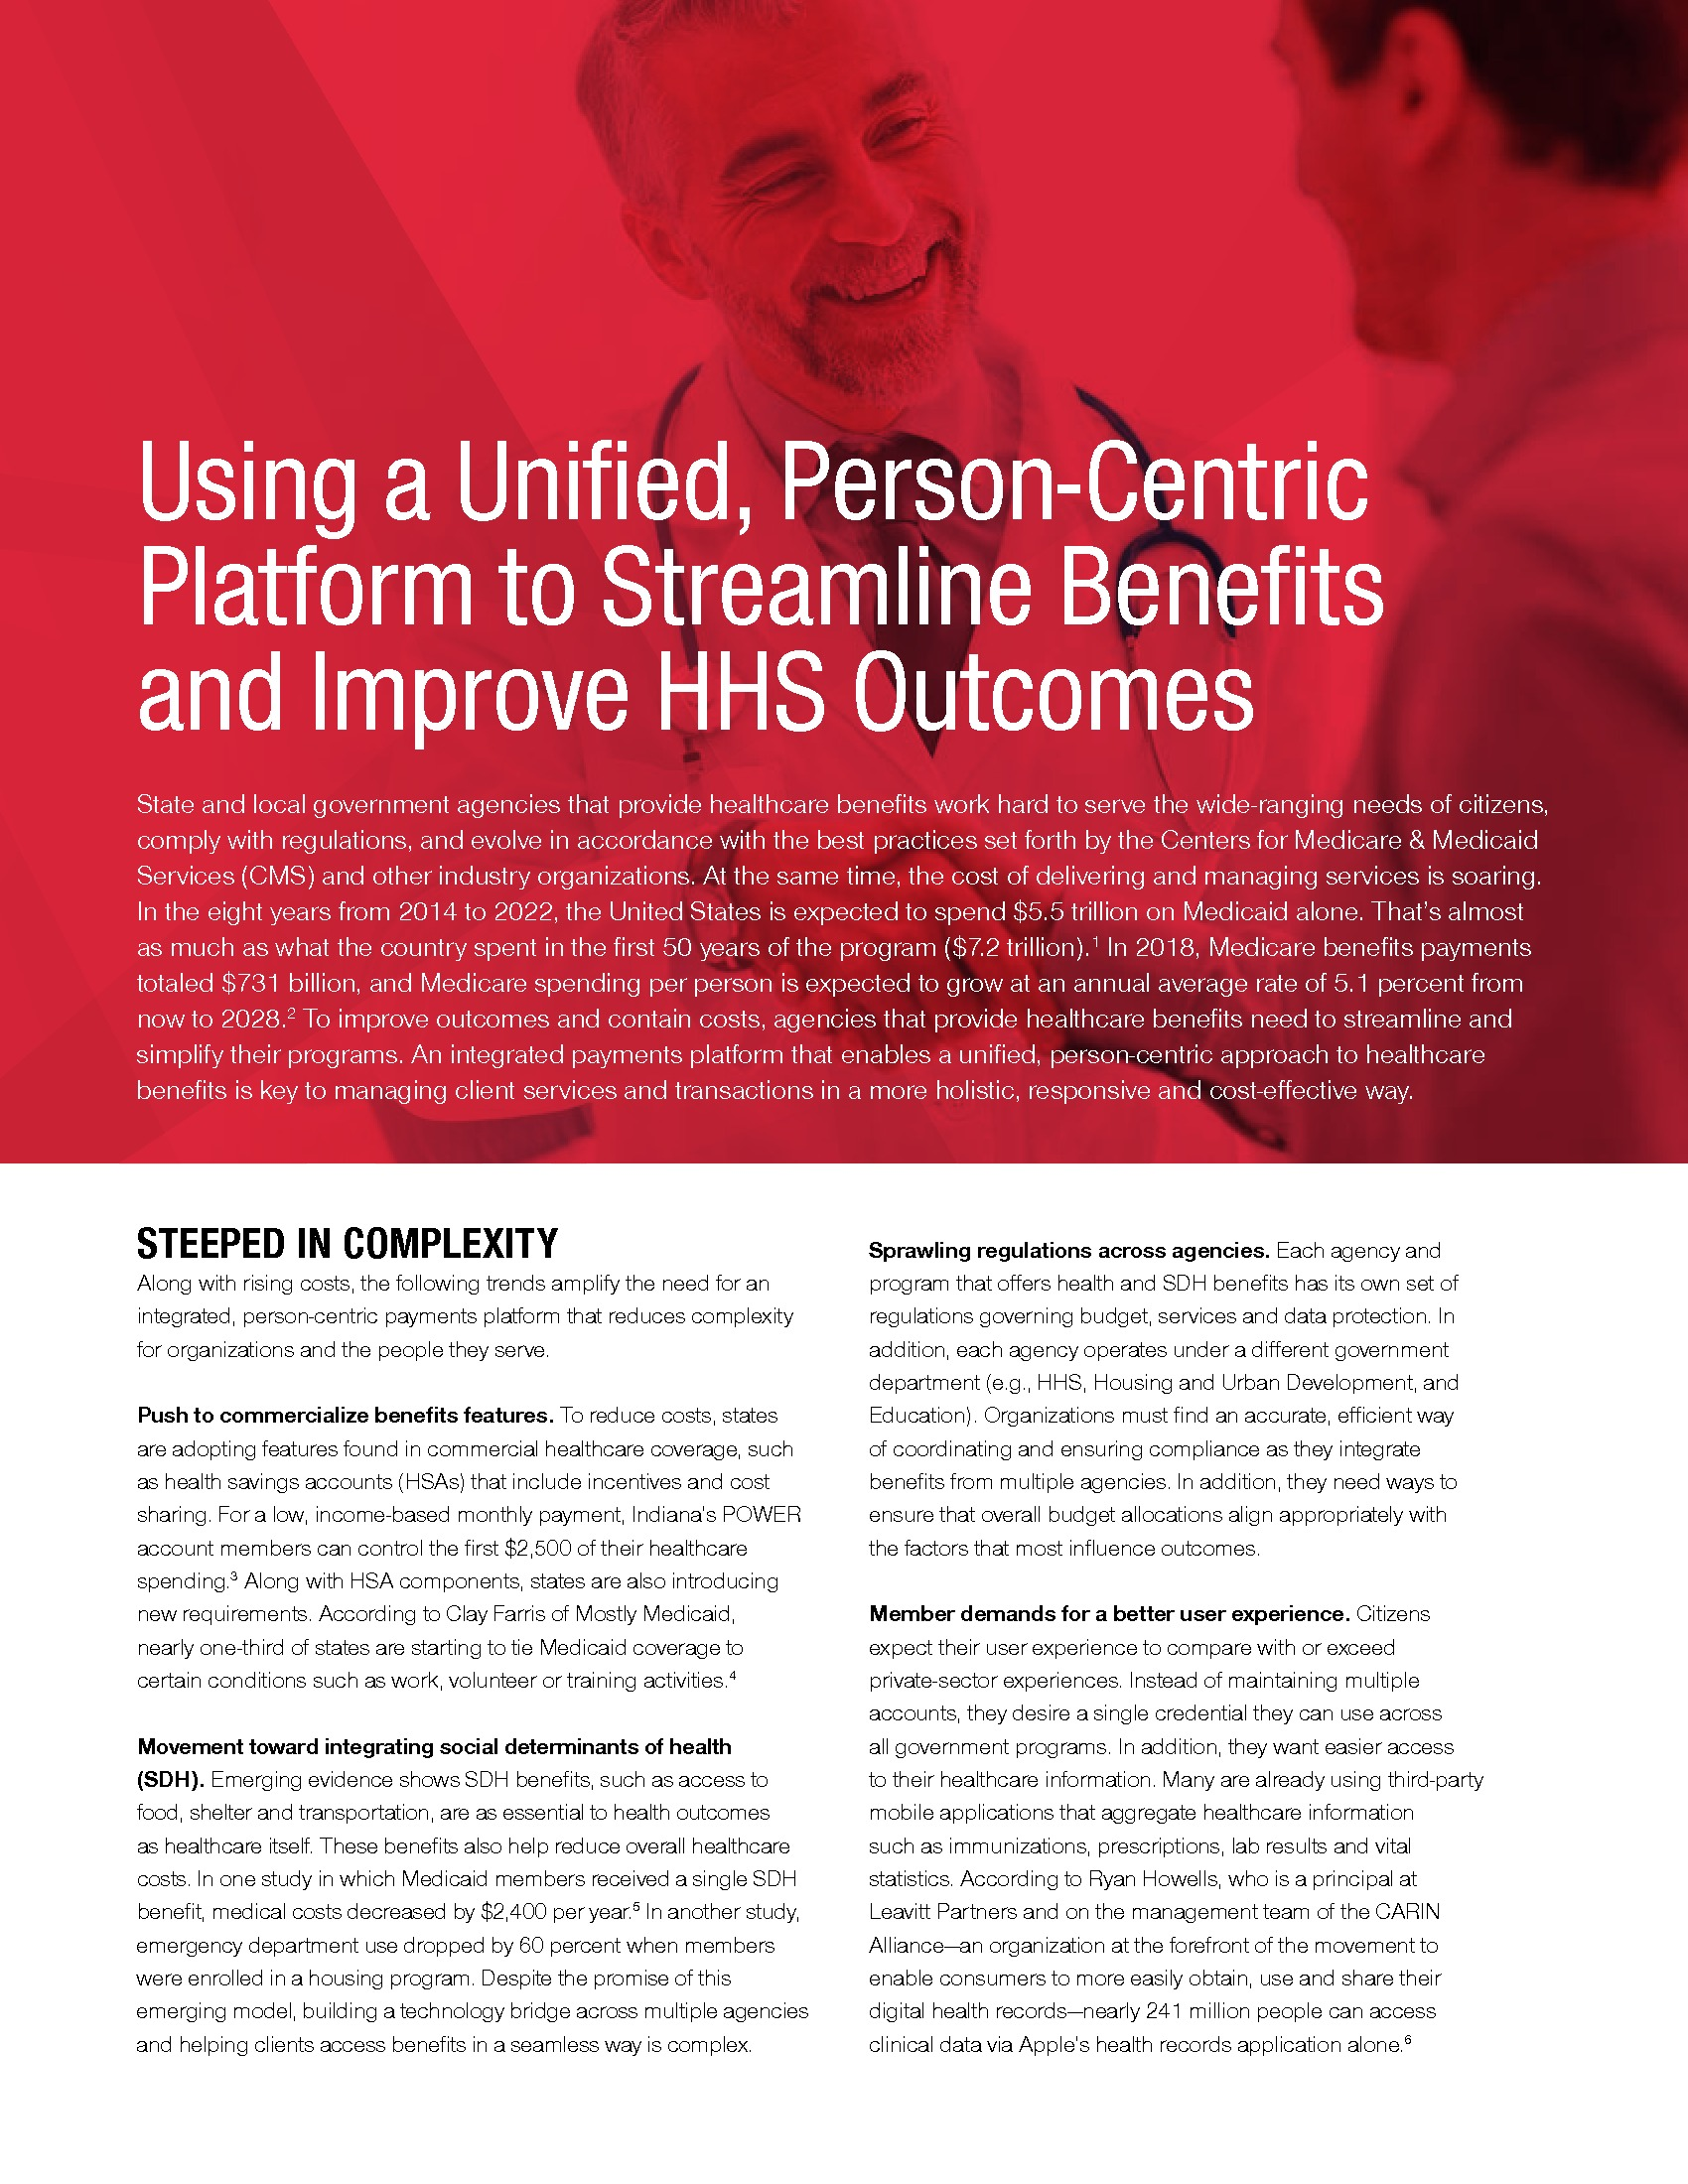 Using a Unified, Person-Centric Platform to Streamline Benefits and Improve HHS Outcomes